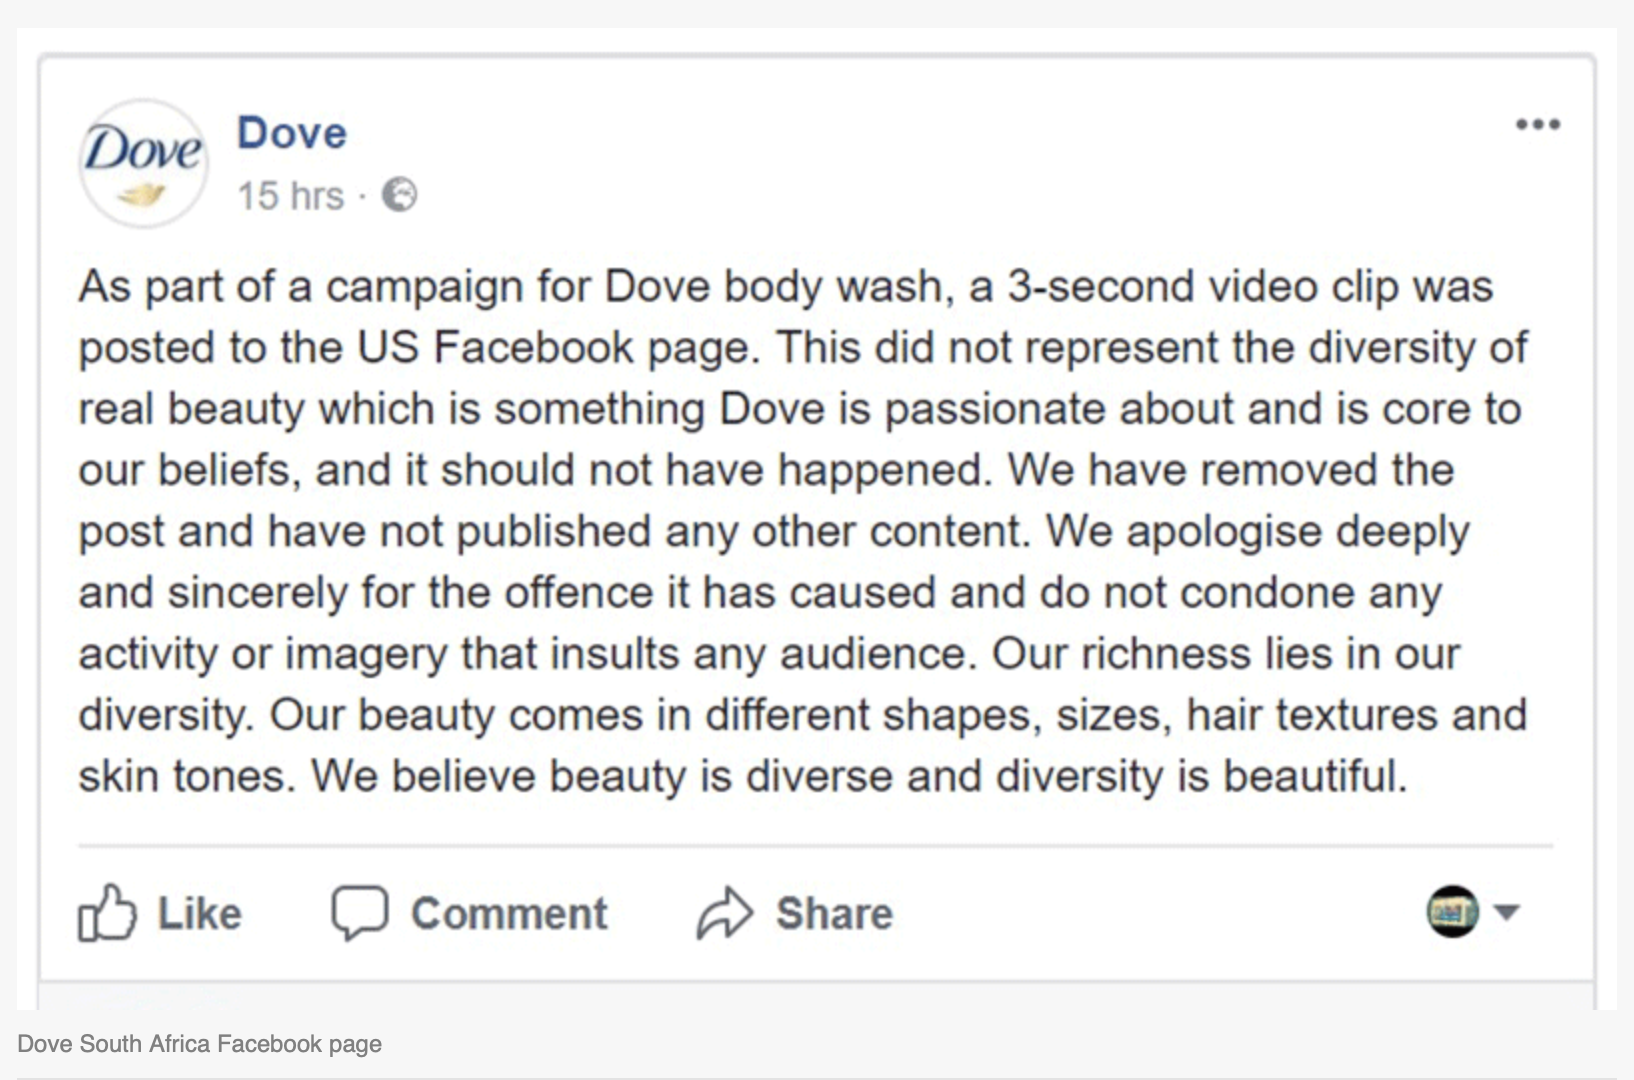 Dove's Apology in South Africa